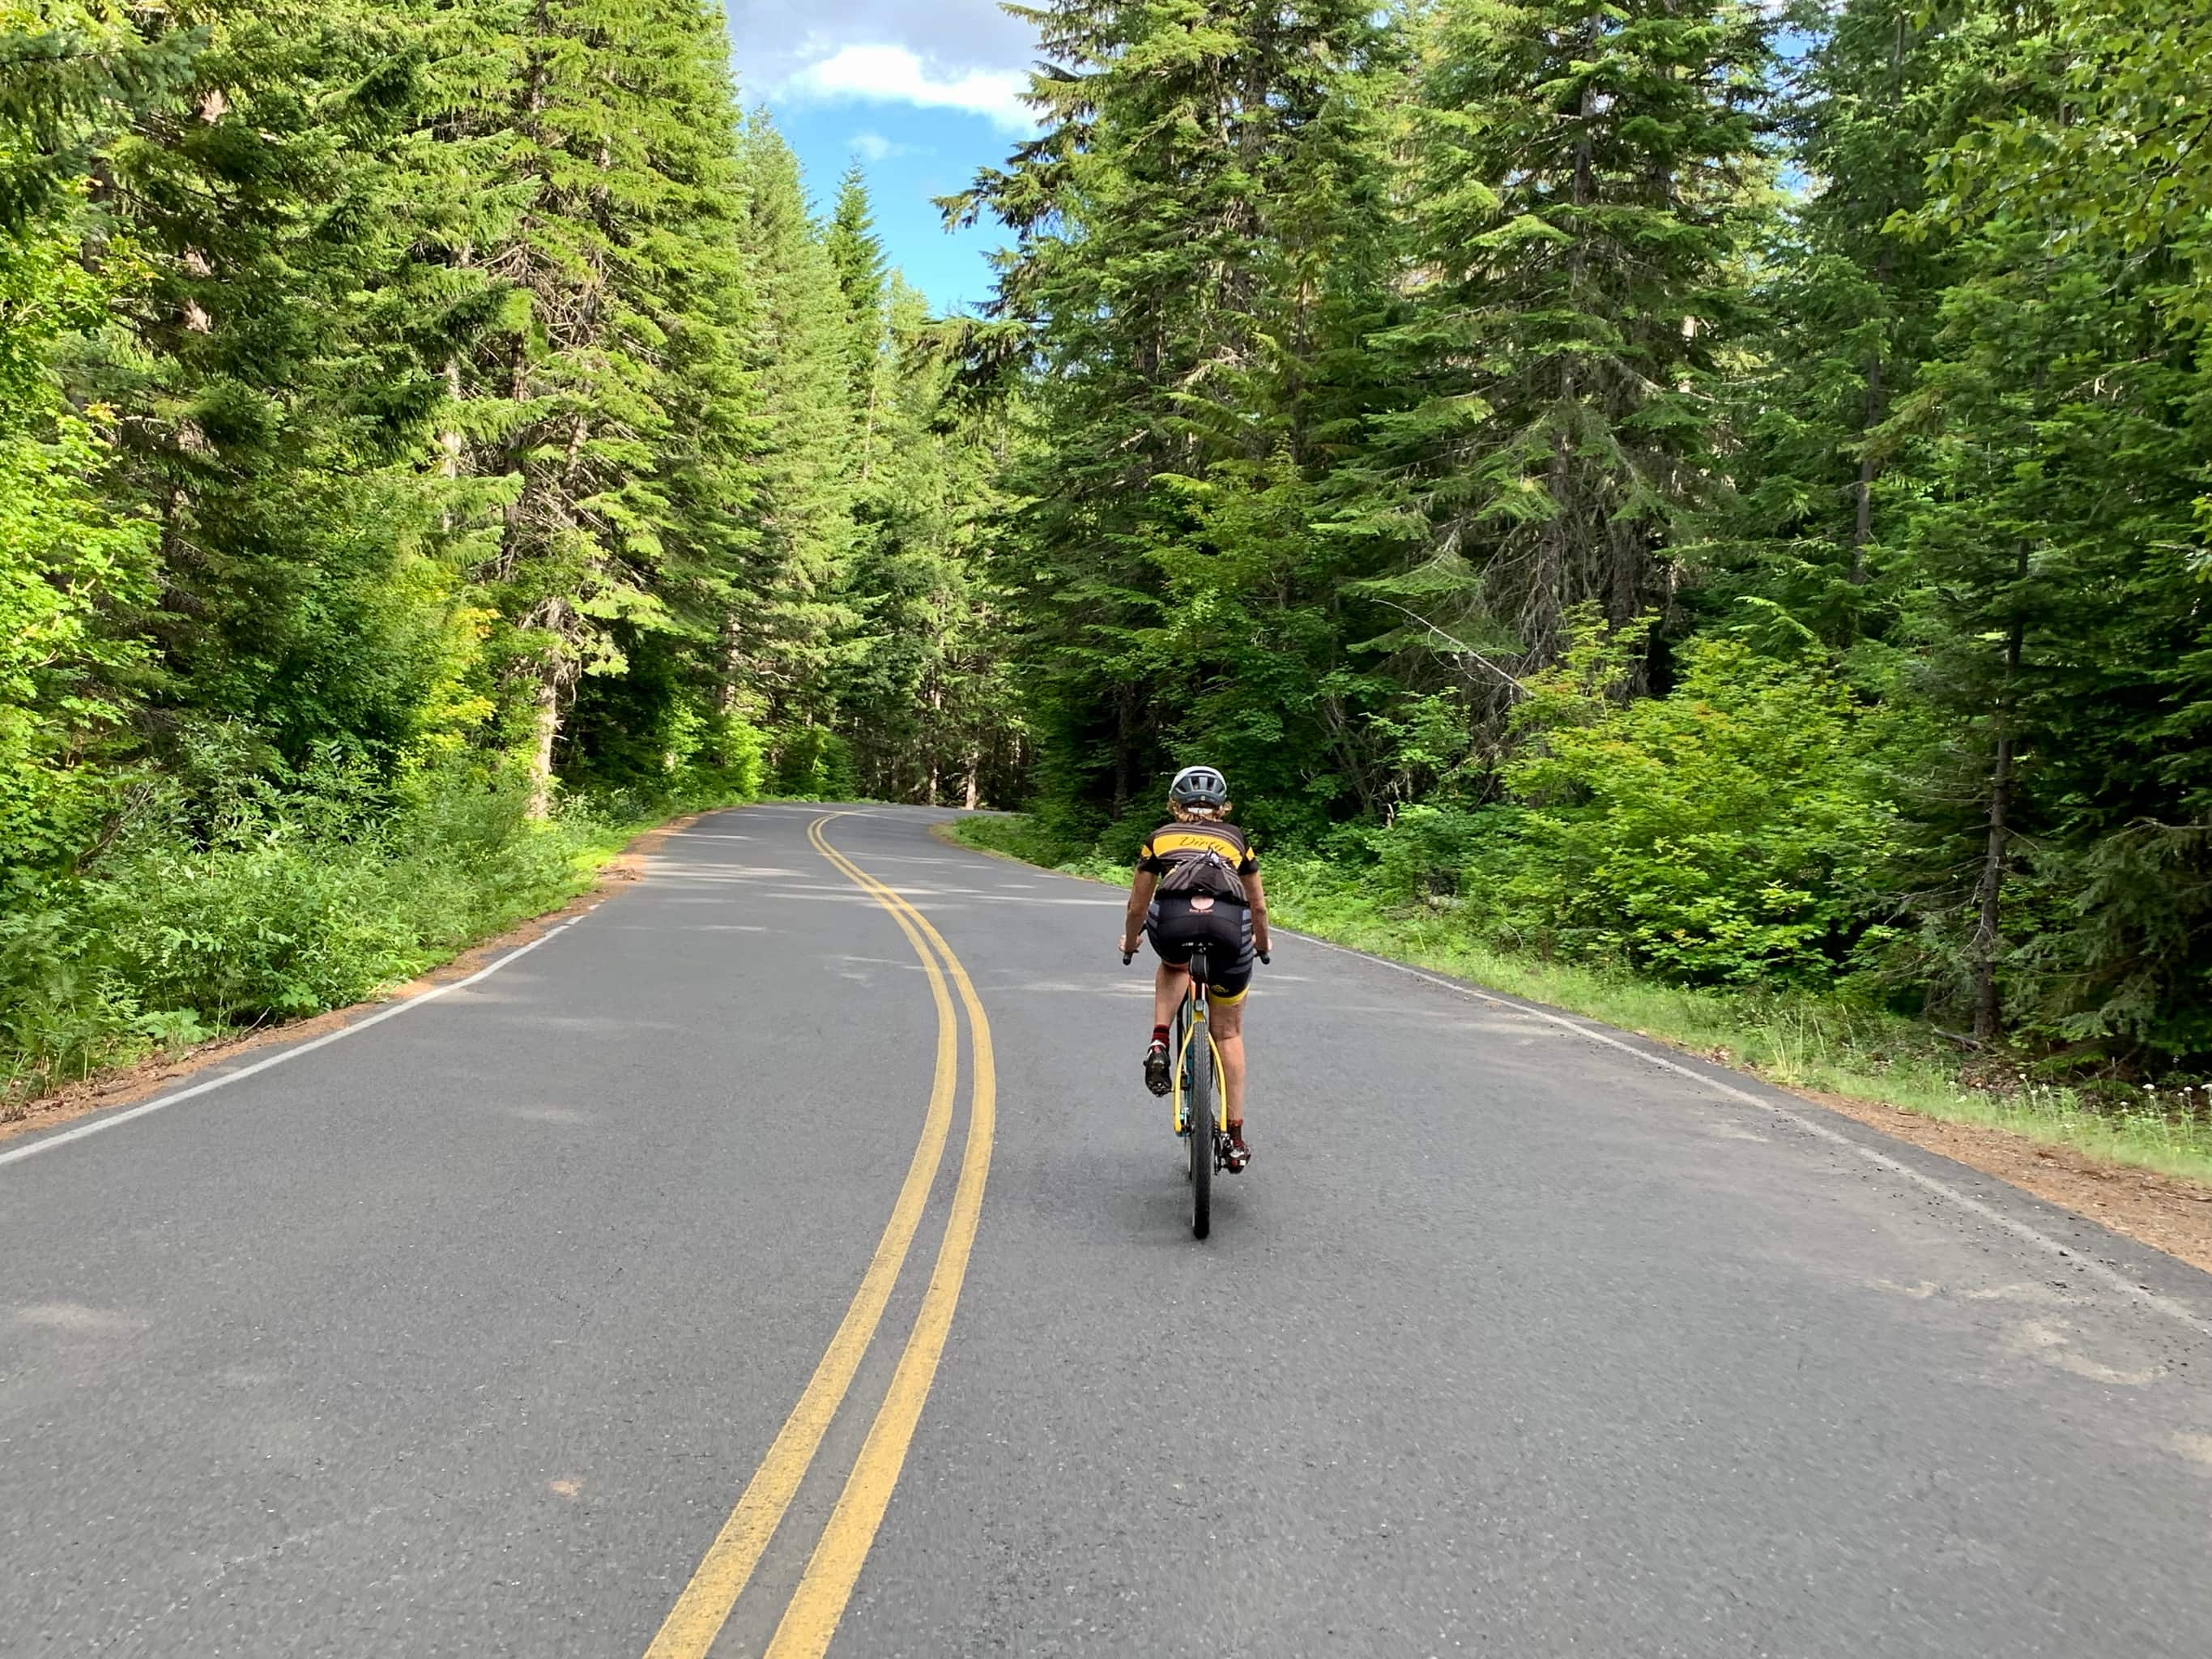 Cyclist descending NF-23 in Gifford Pinchot National Forest near Trout Lake, WA.